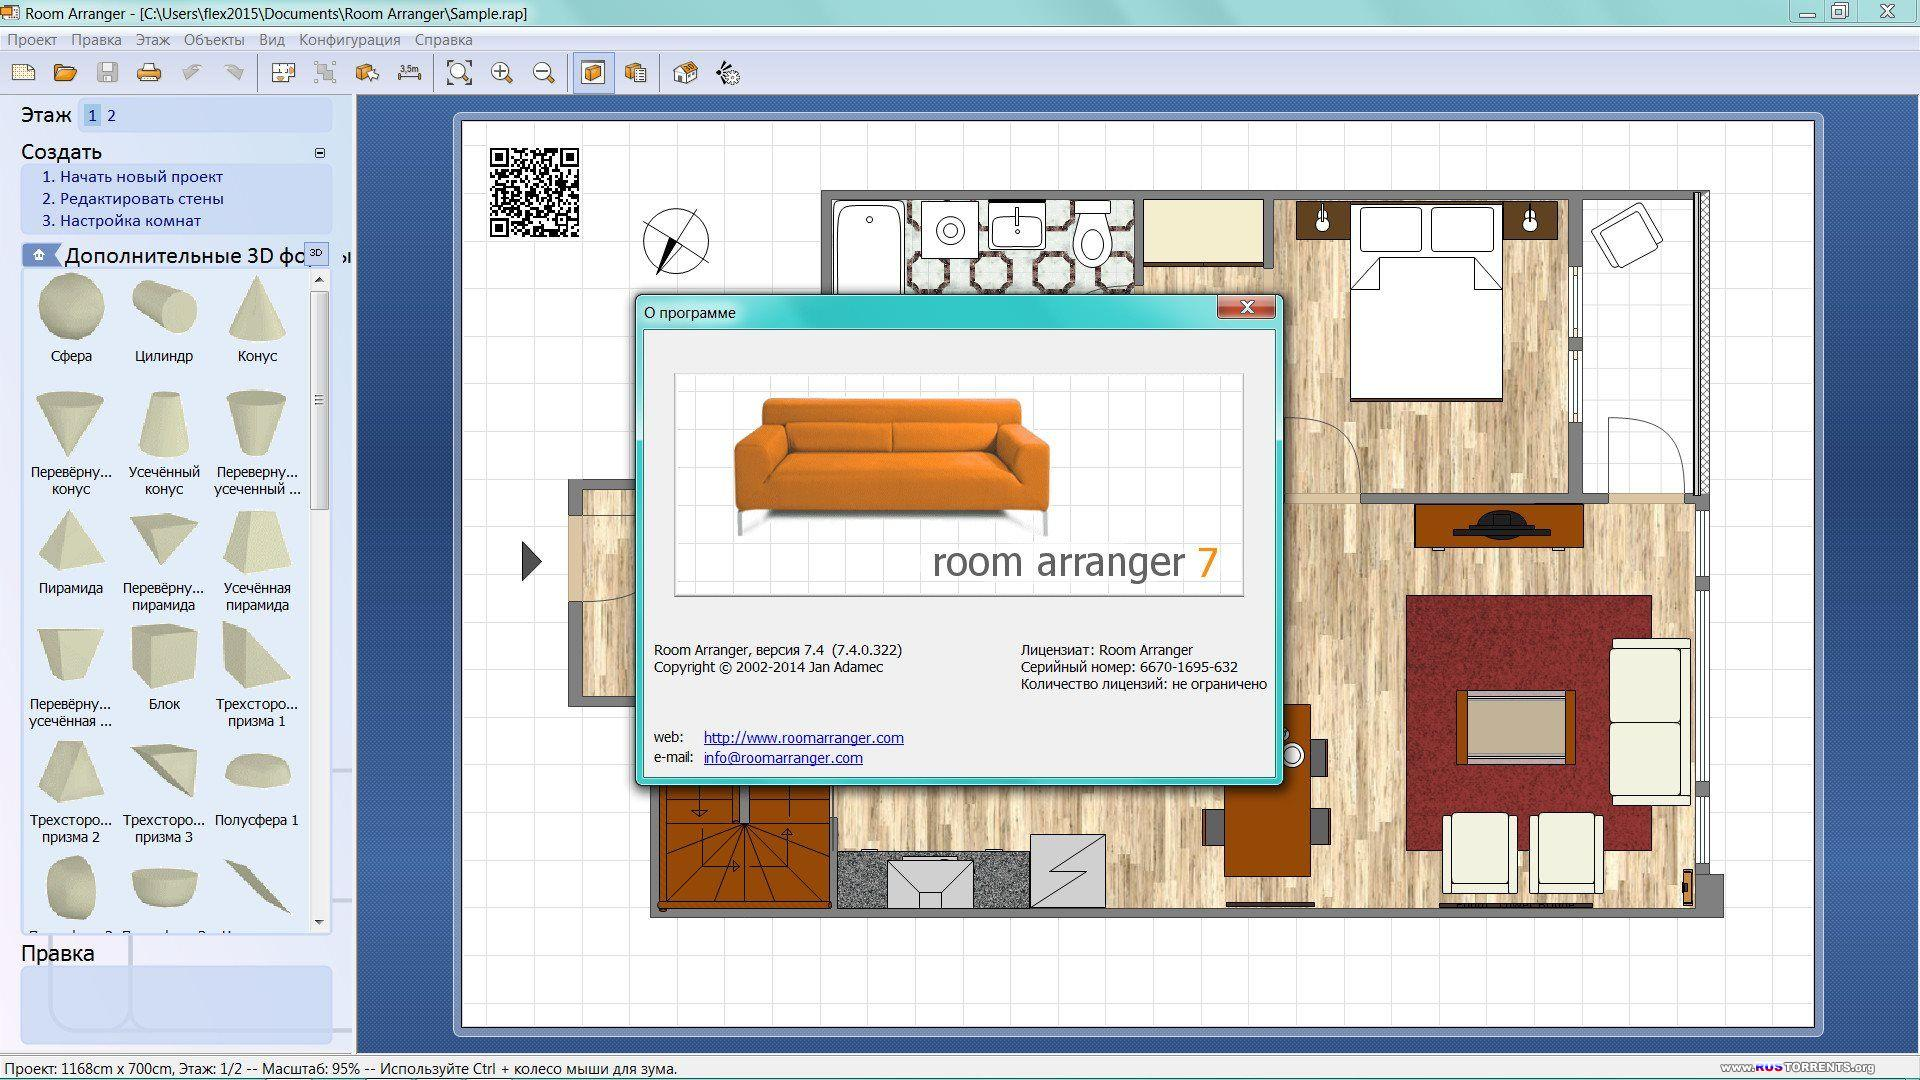 Room Arranger 7.4.0.322